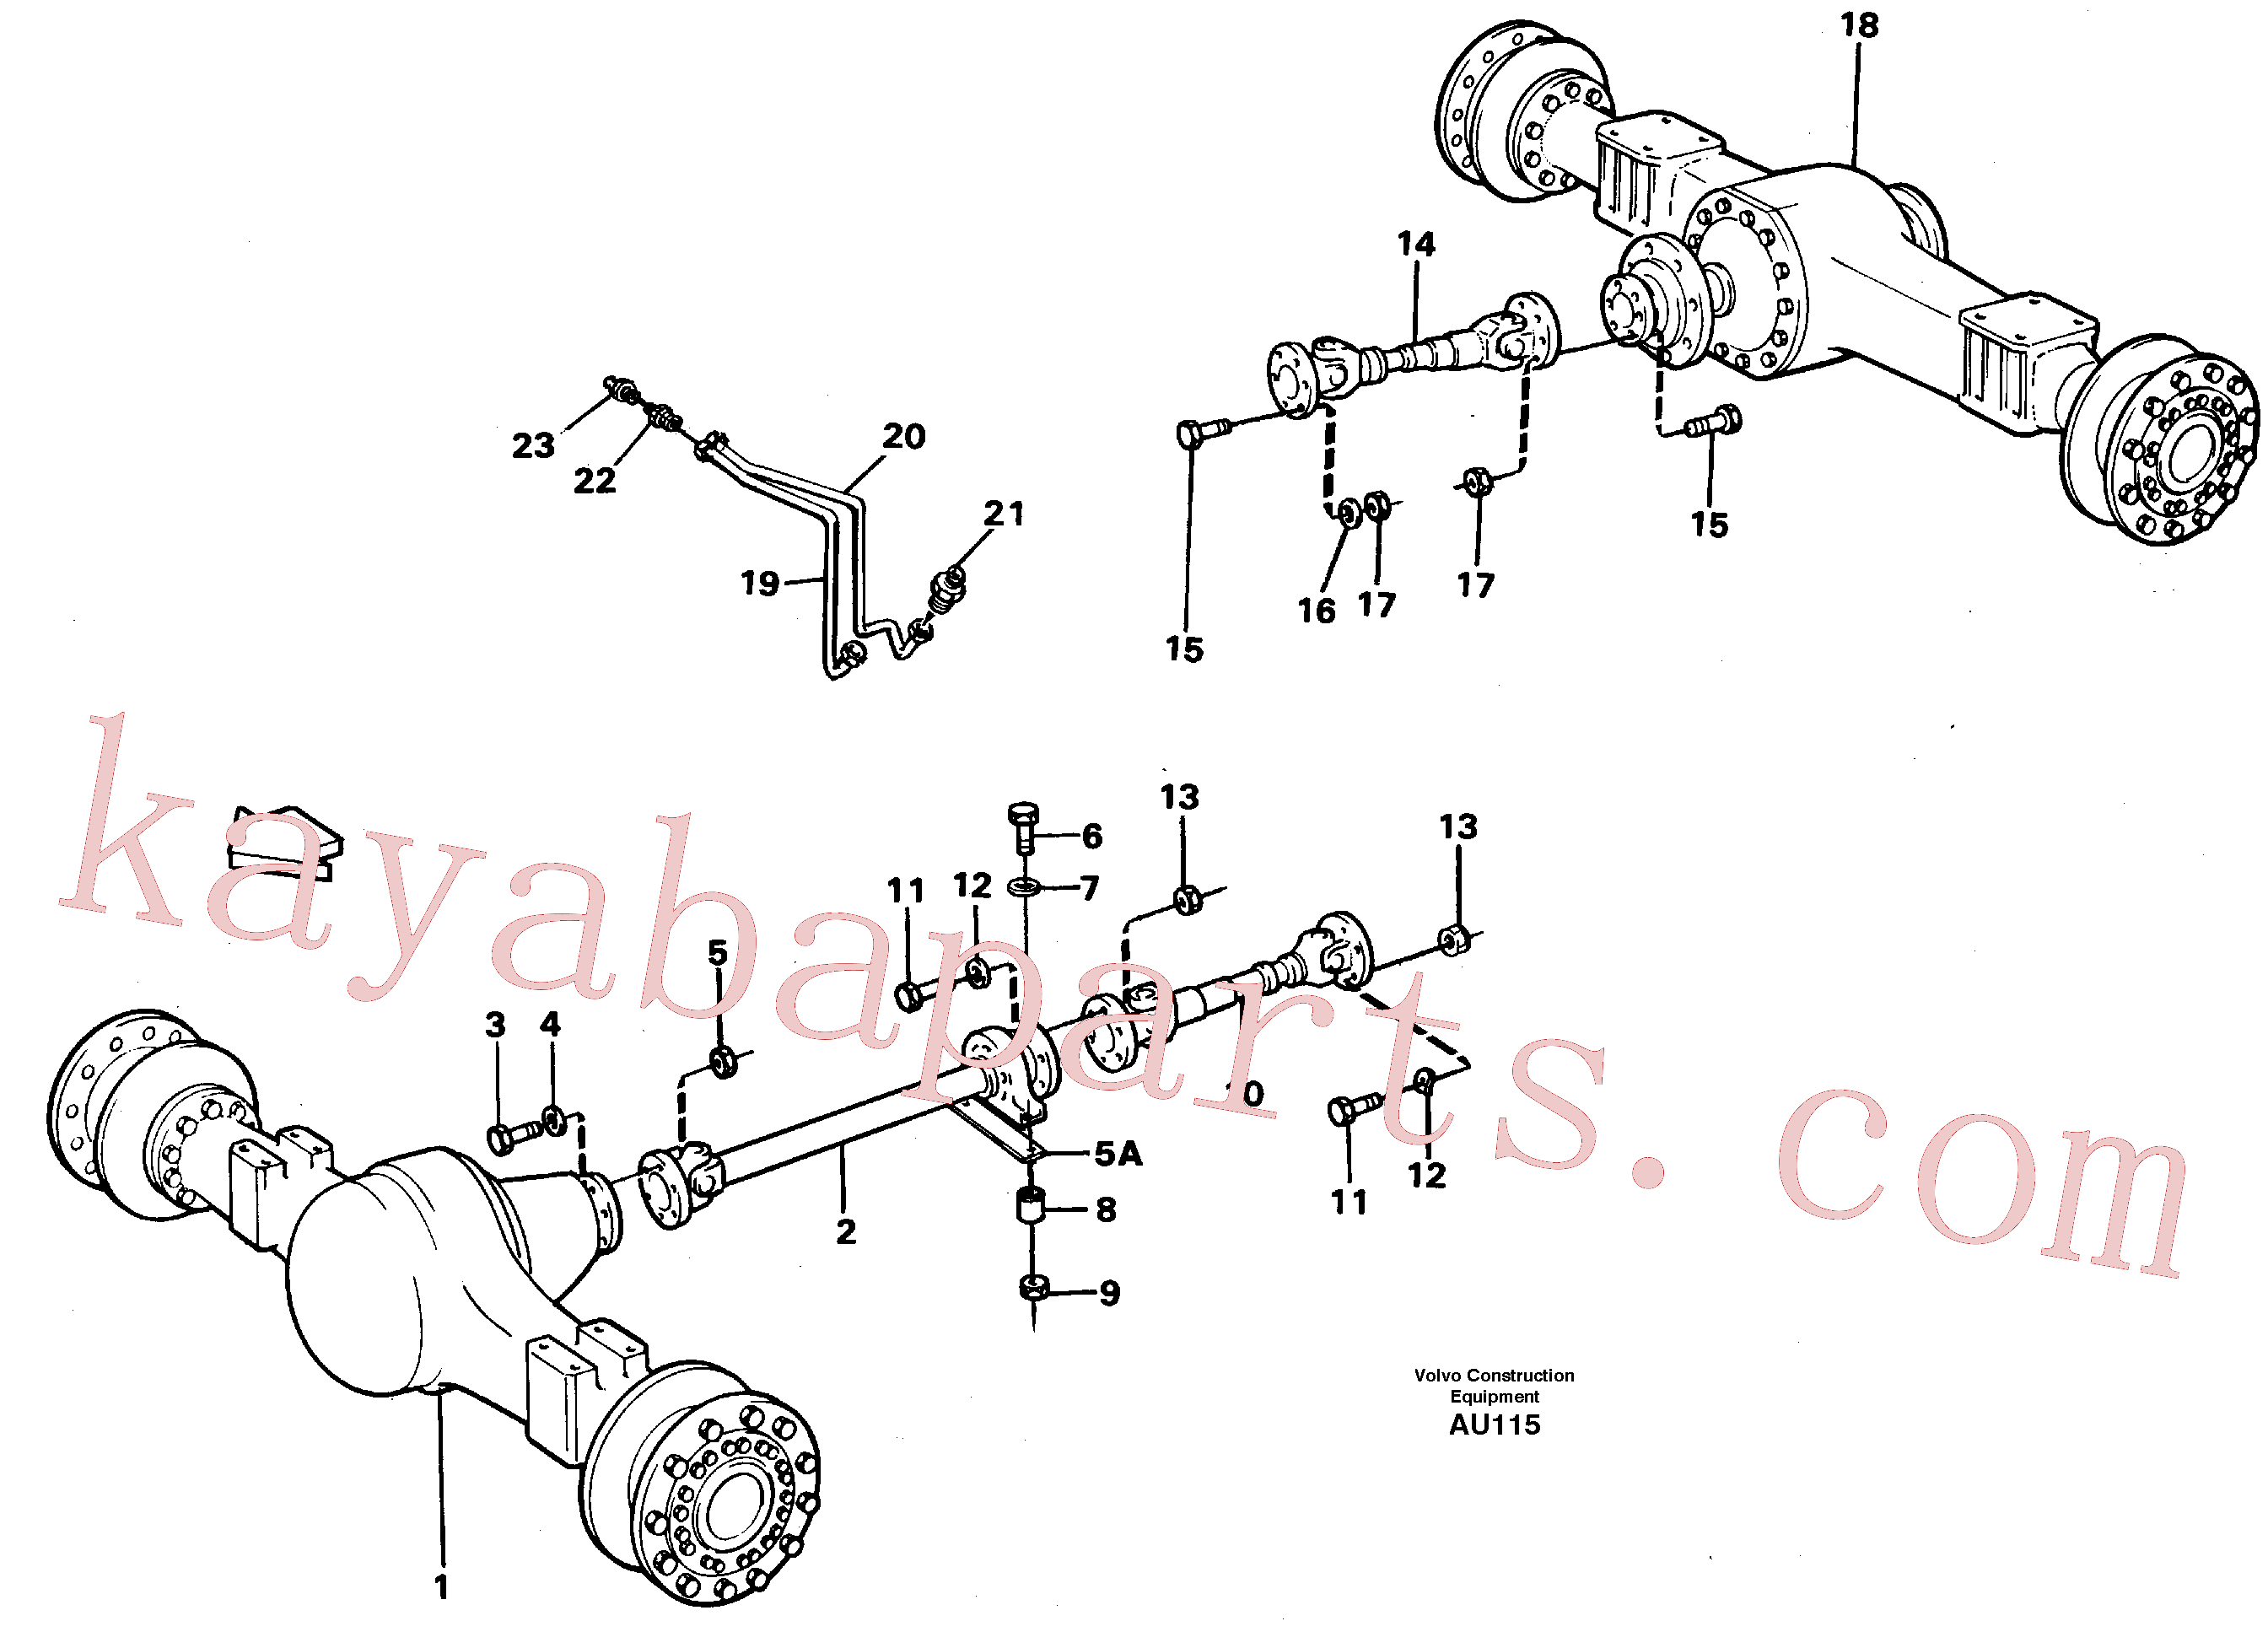 VOE11026356 for Volvo Propeller shafts with fitting parts(AU115 assembly)